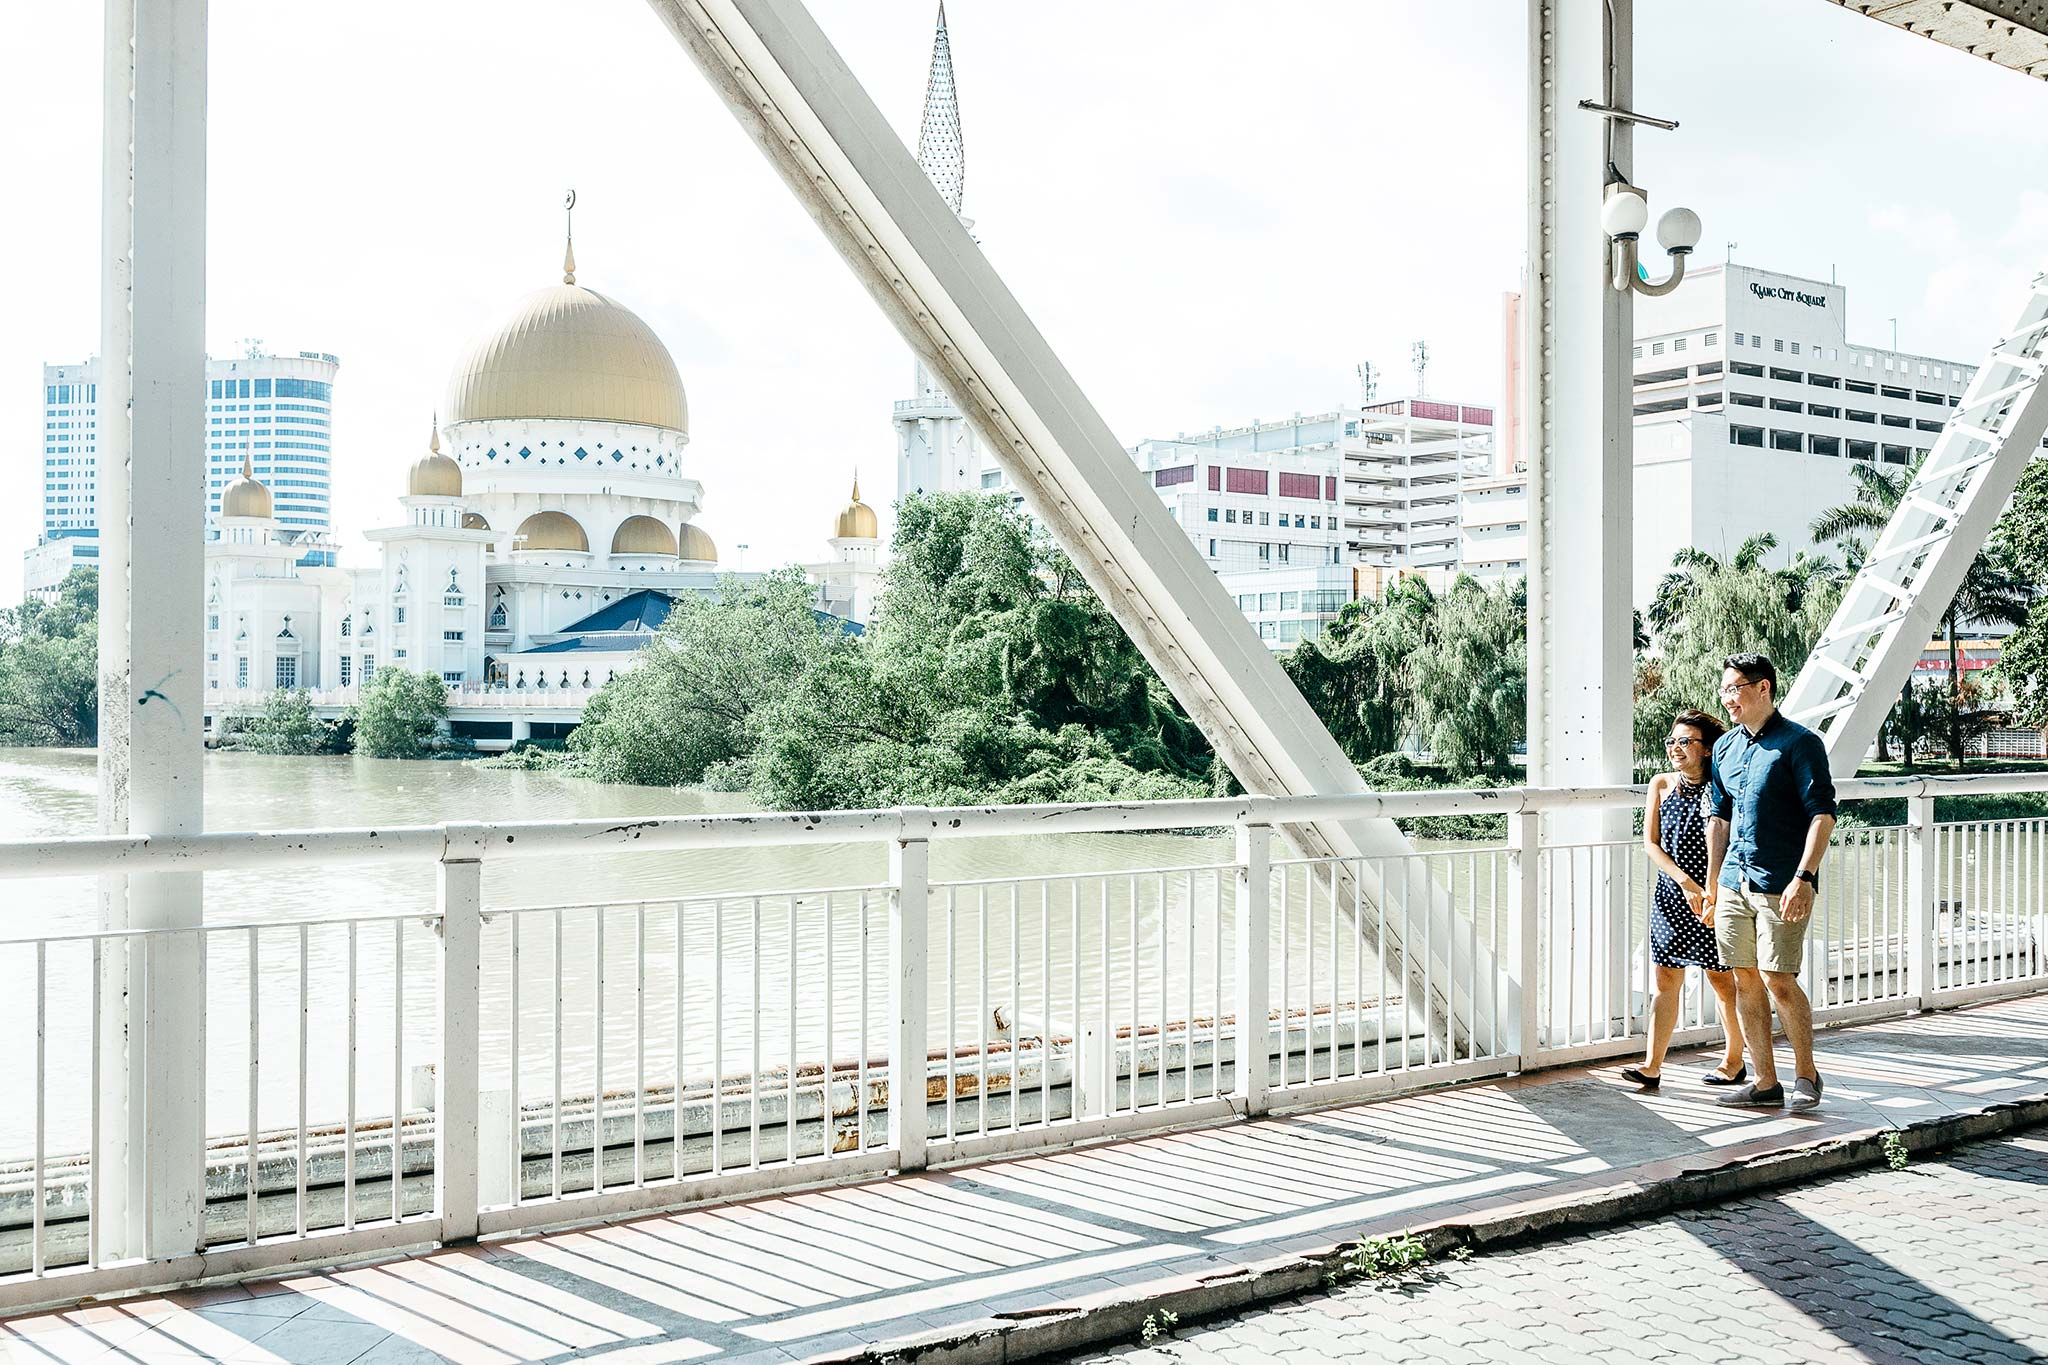 Klang-Engagement-Pre-Wedding-Photographer-Klang-River-Bridge